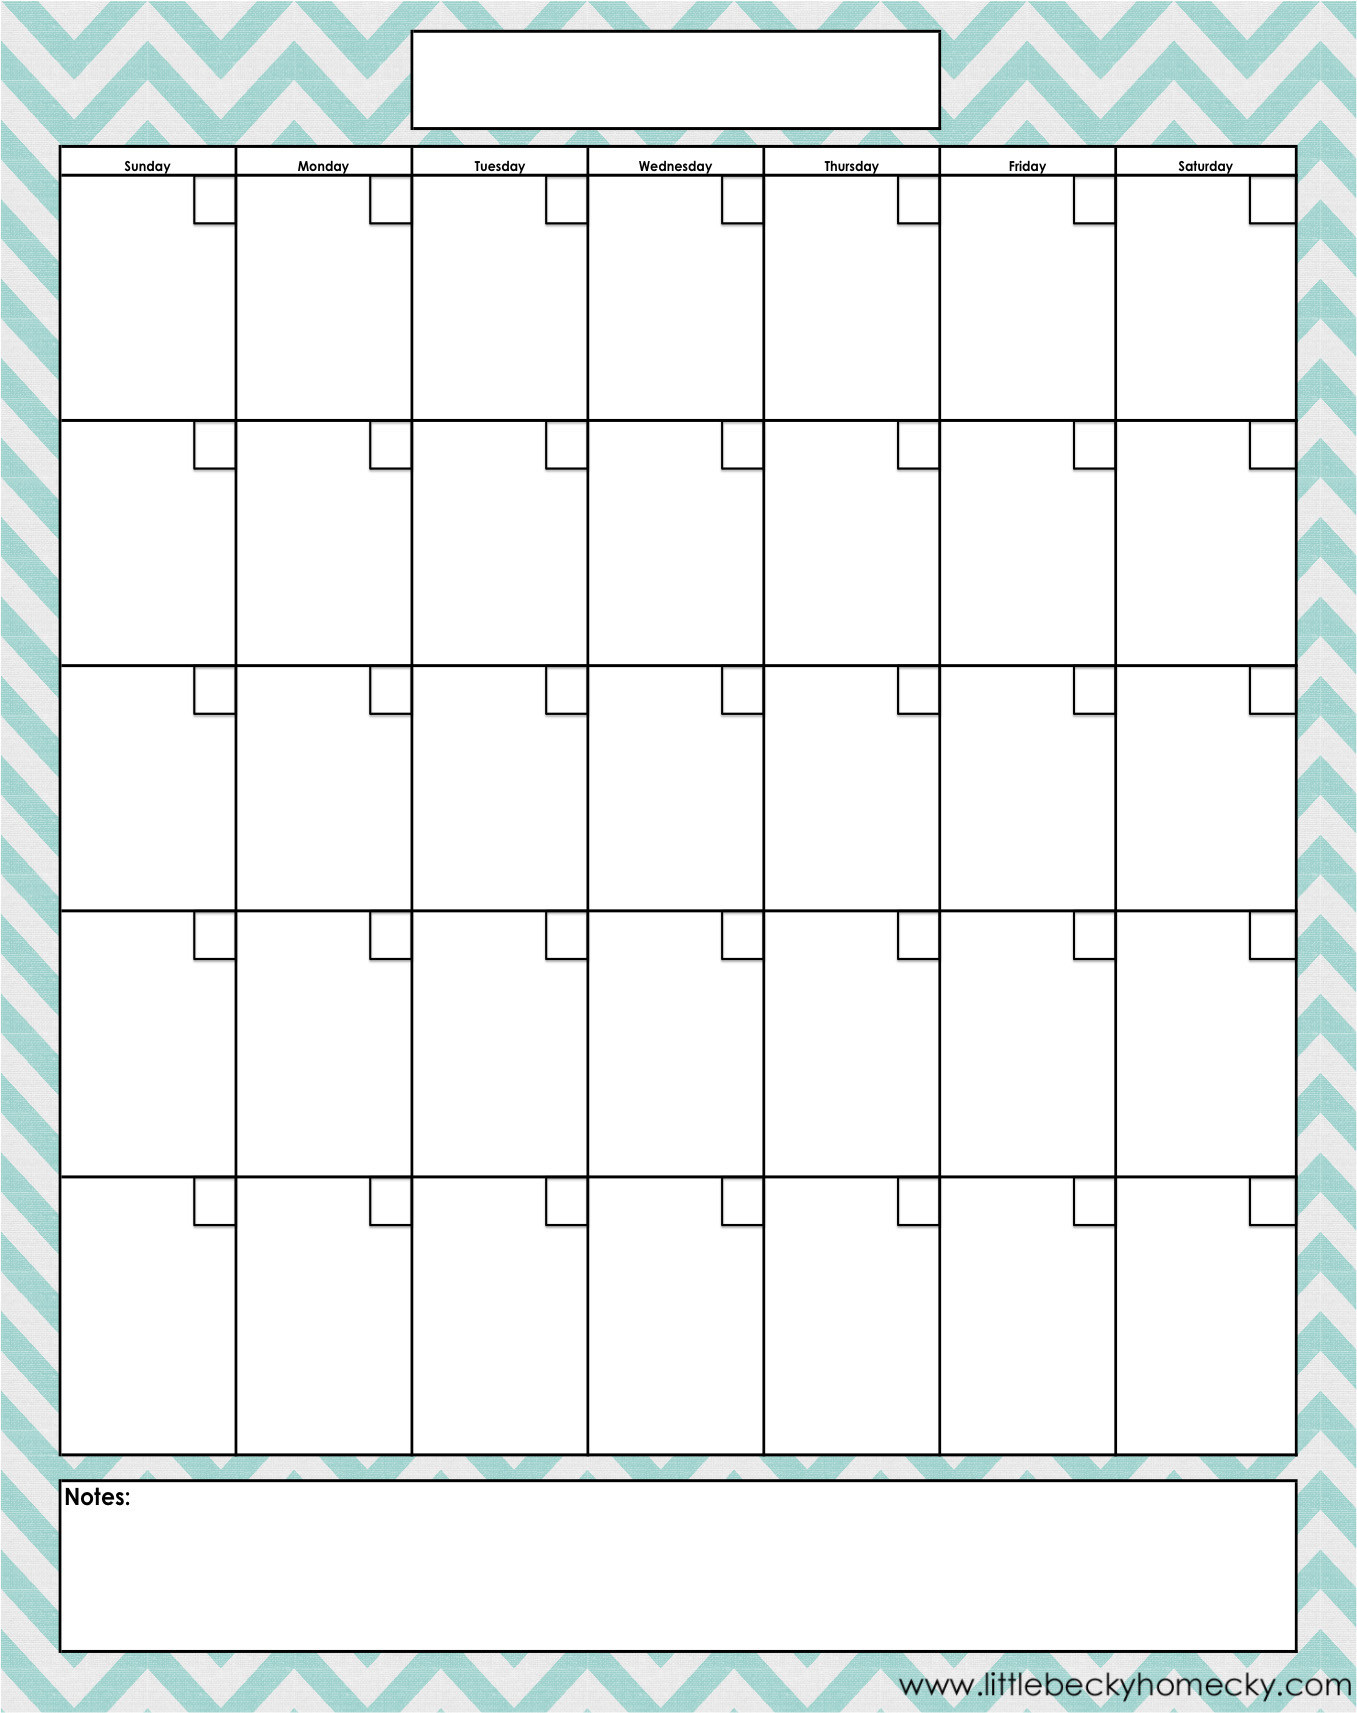 Blank-Monthly-Calendar-Printable-Pdfs within Blank Monthly Calendar Template